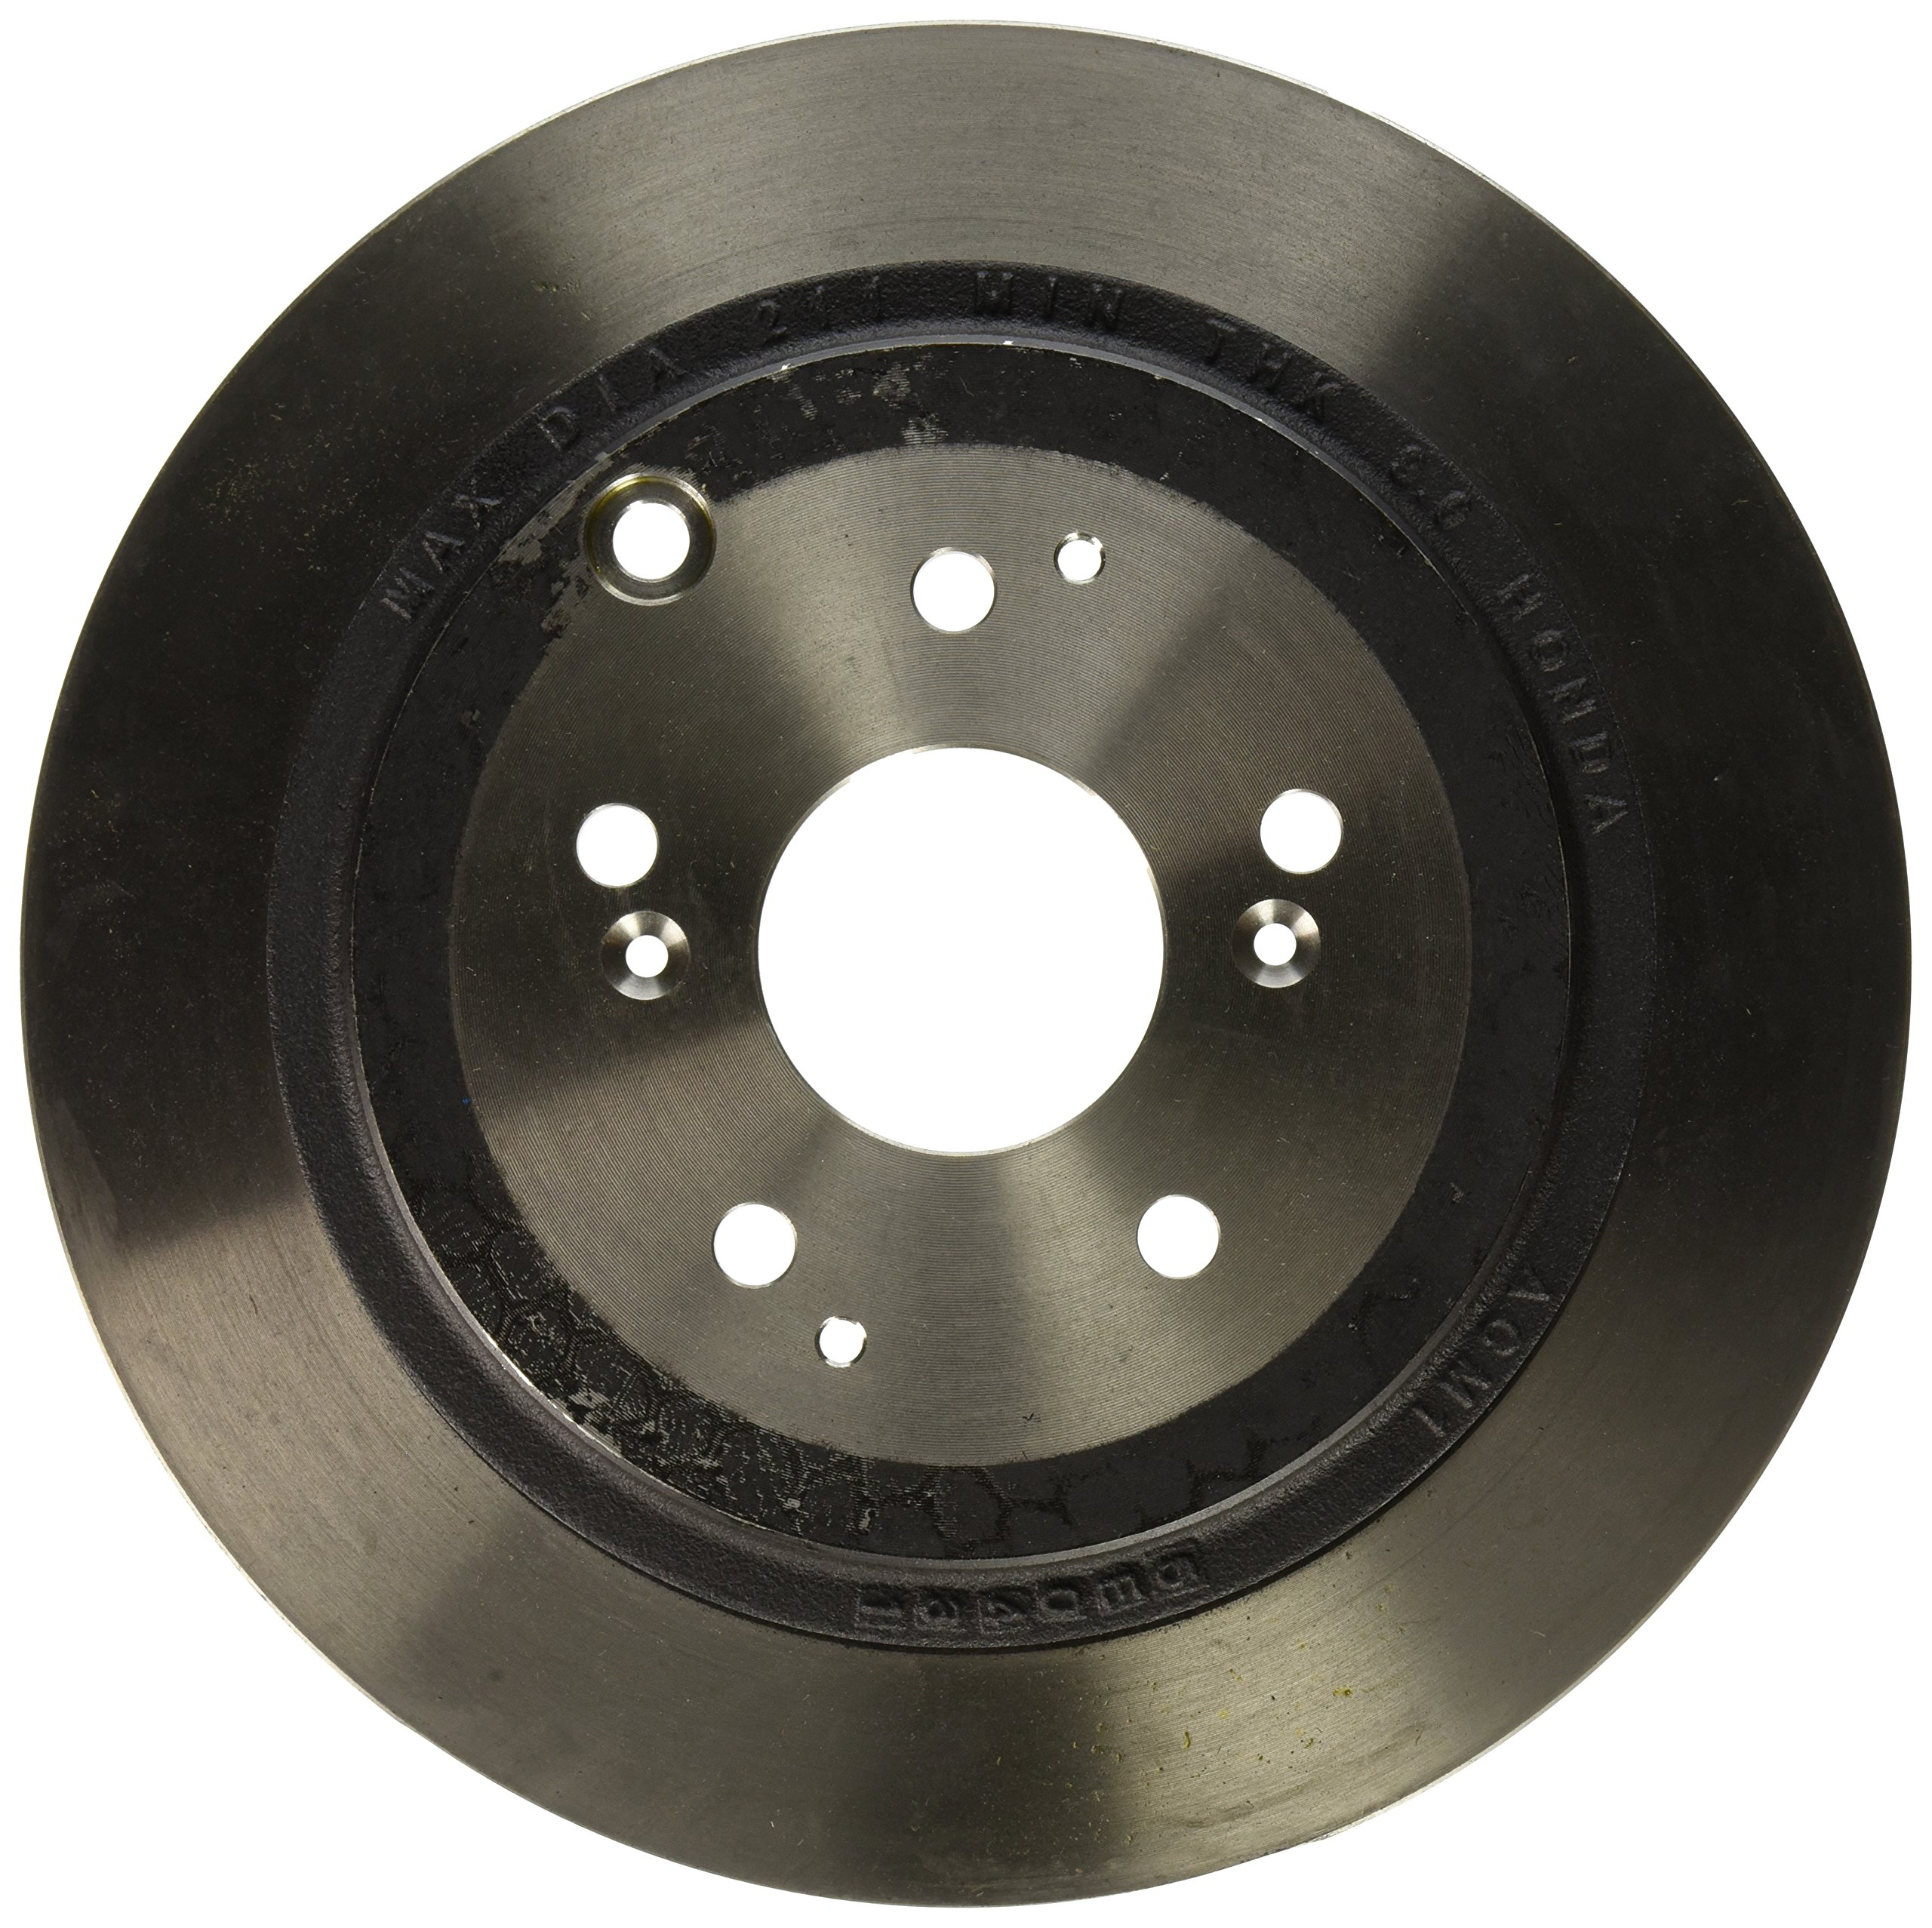 Genuine Honda 42510-S3V-A01 Rear Brake Disk by Honda